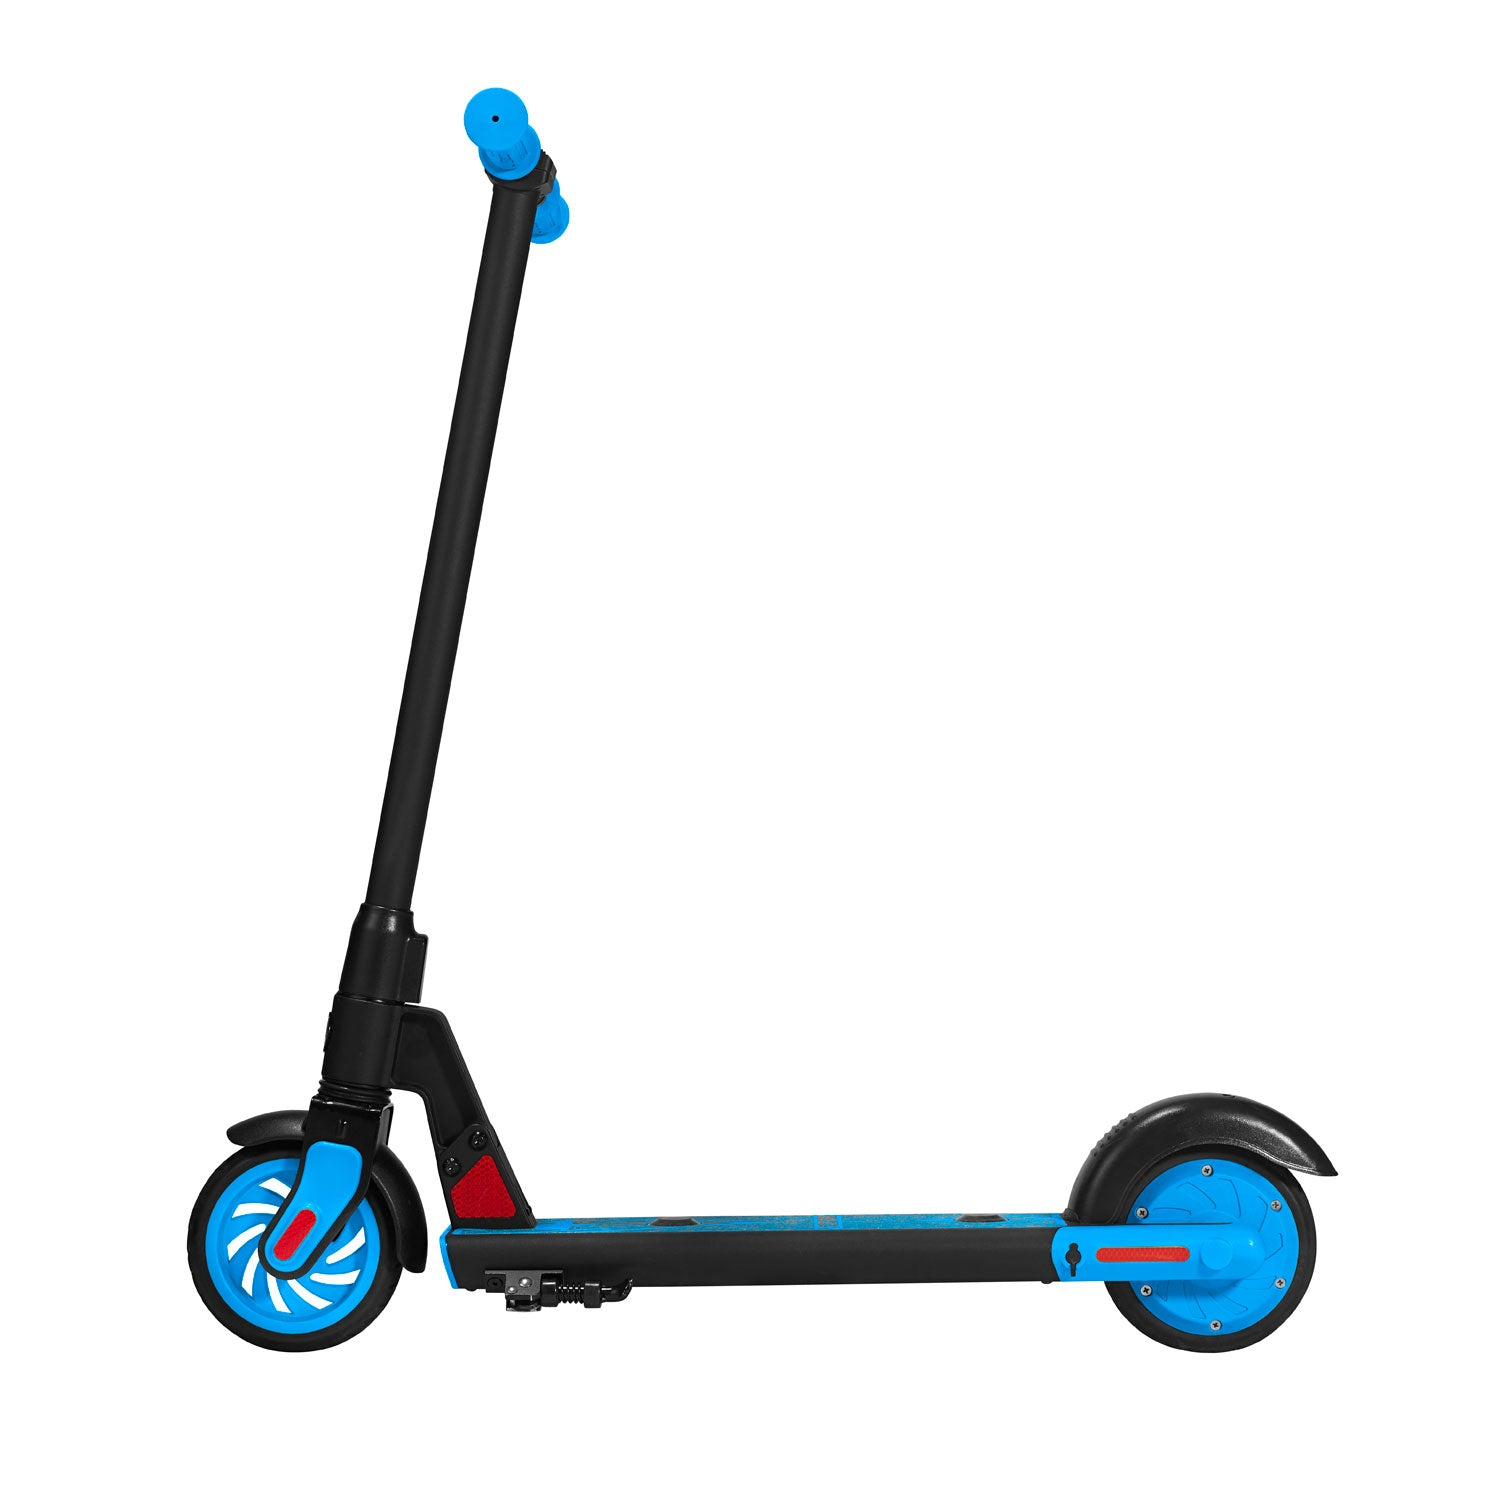 Blue gks electric scooter for kids side image